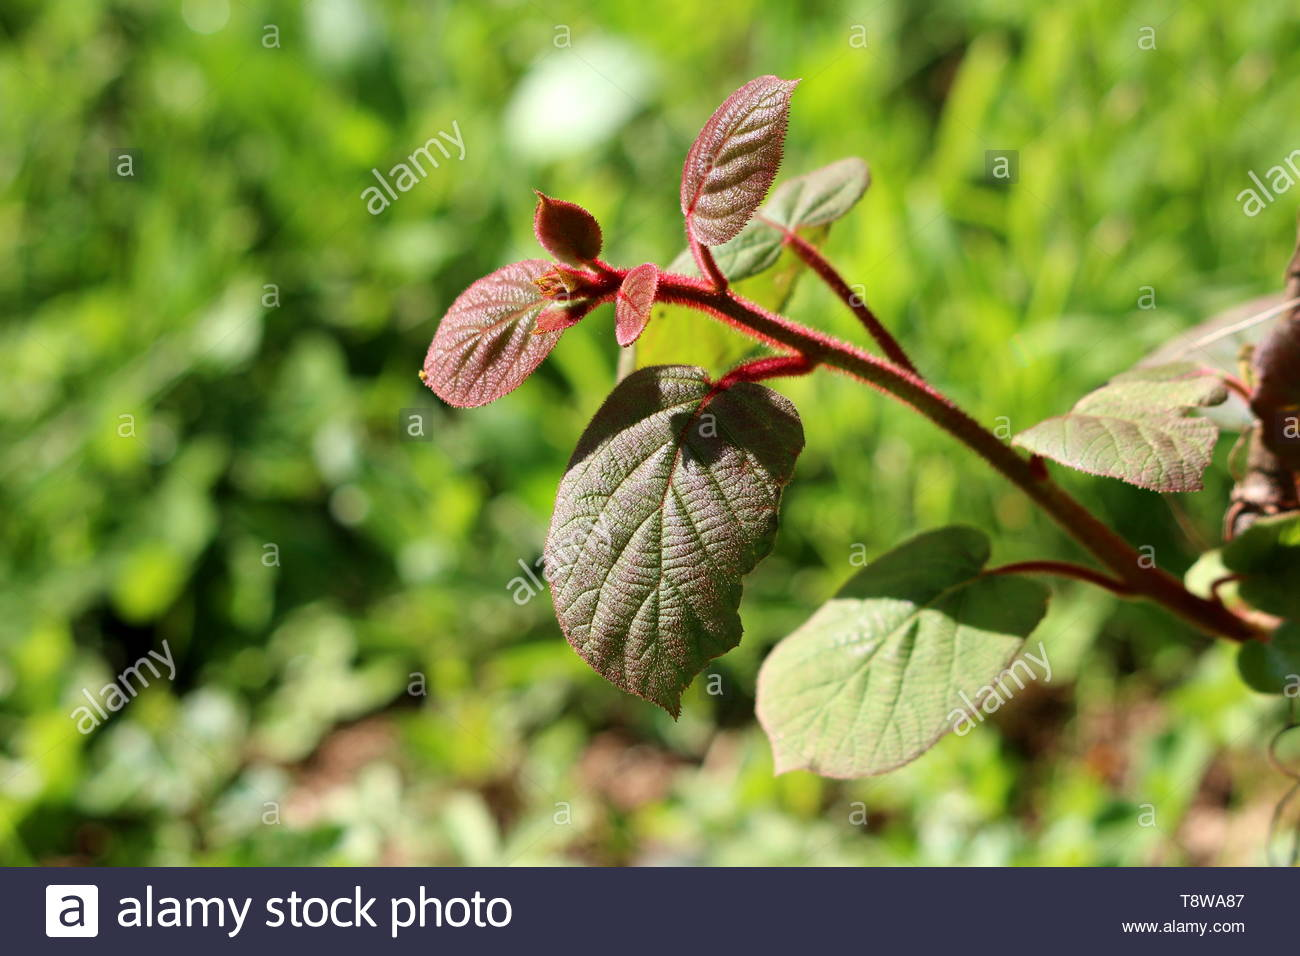 Dark green to red leathery leaves and hairy stem of Kiwi or Kiwifruit woody vine plant planted in local garden - Stock Image